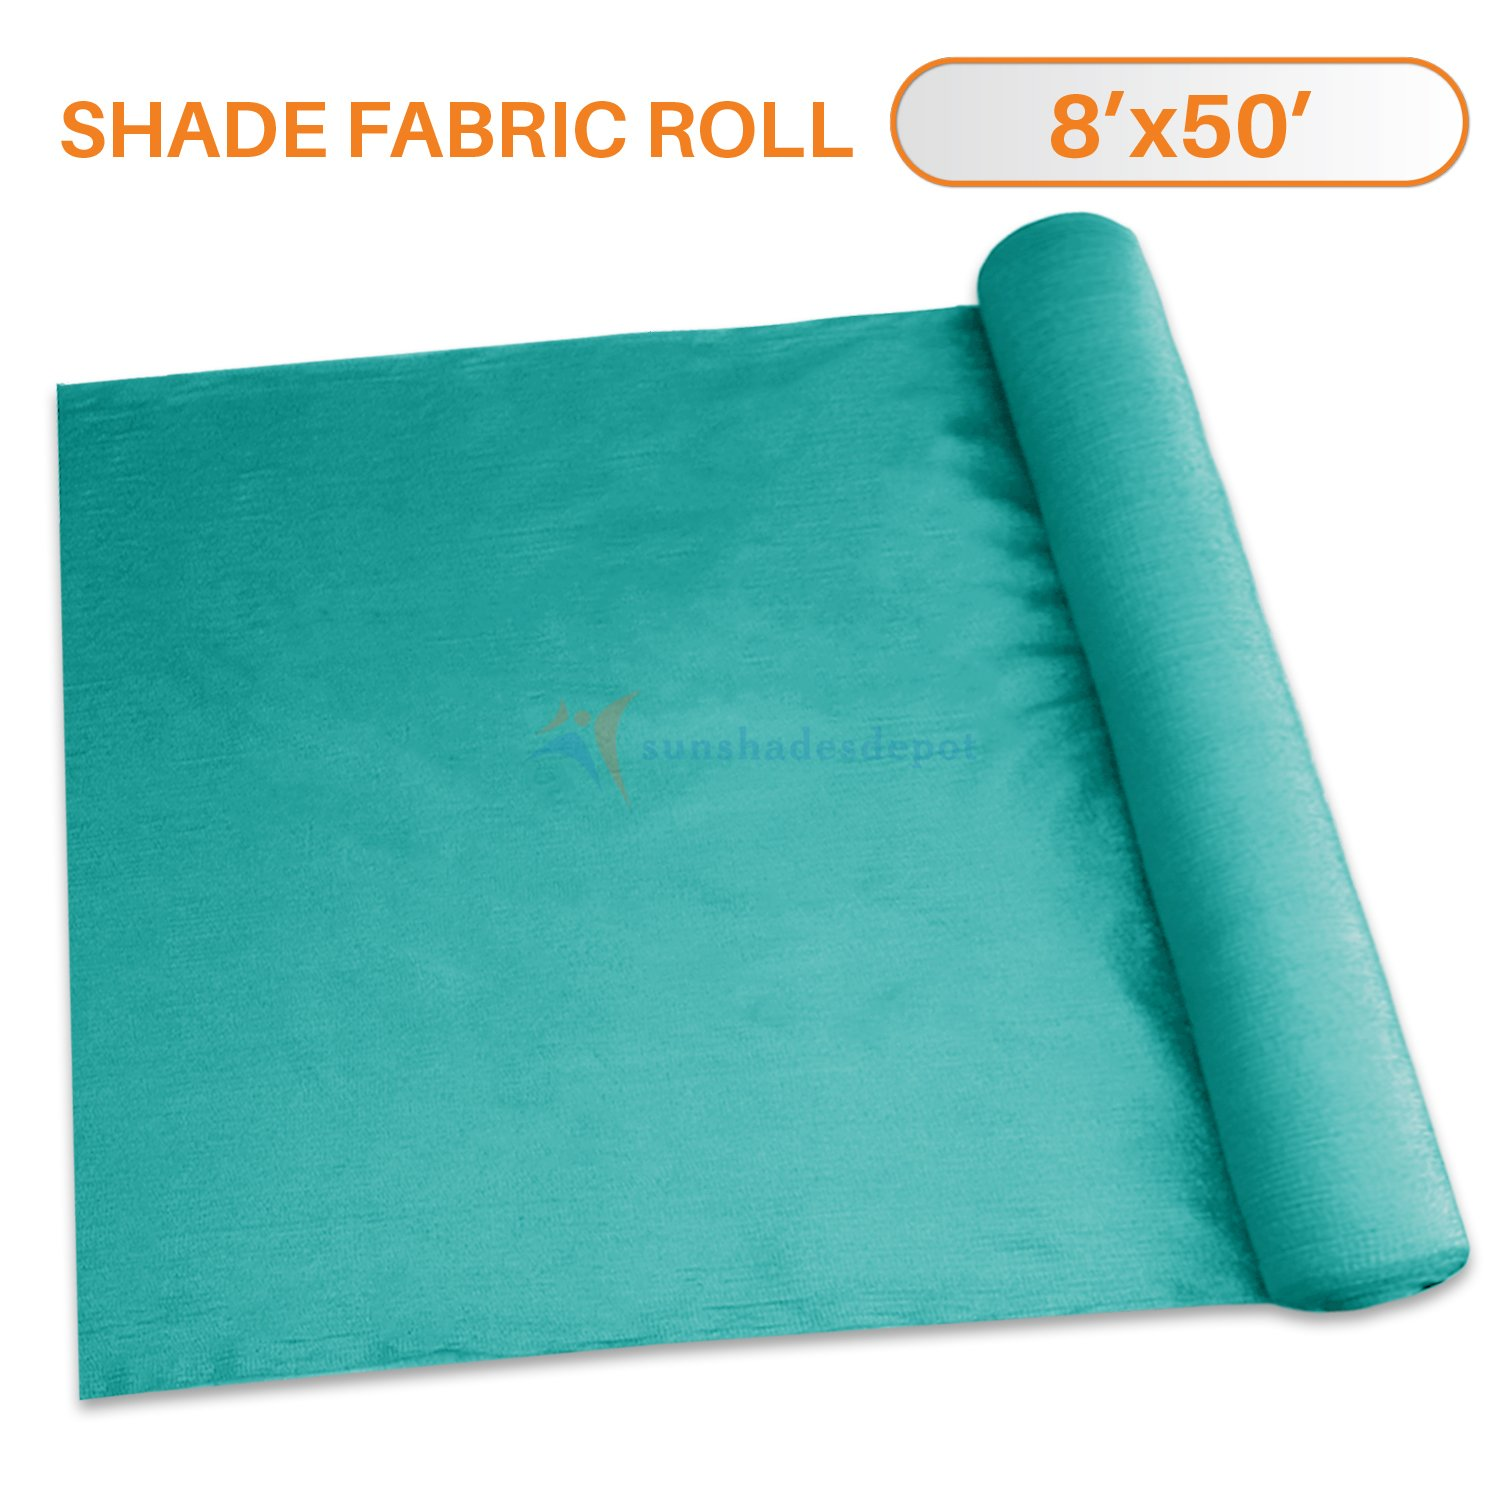 Sunshades Depot 8' x 50' Shade Cloth 180 GSM HDPE Turquoise Green Fabric Roll Up to 95% Blockage UV Resistant Mesh Net